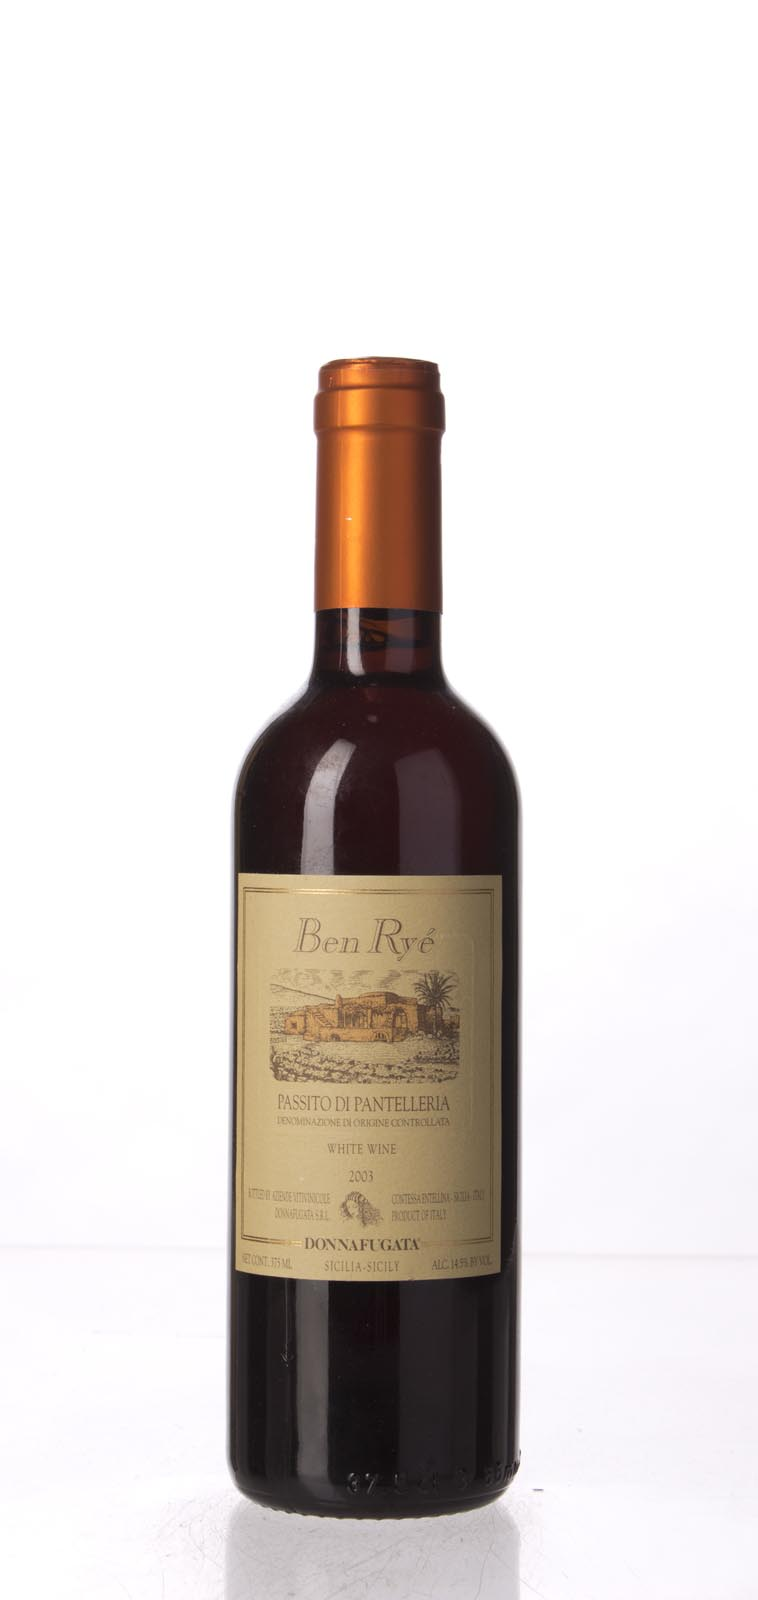 Donnafugata Moscato di Pantelleria Passito `Ben Rye` 2003, 375mL () from The BPW - Merchants of rare and fine wines.